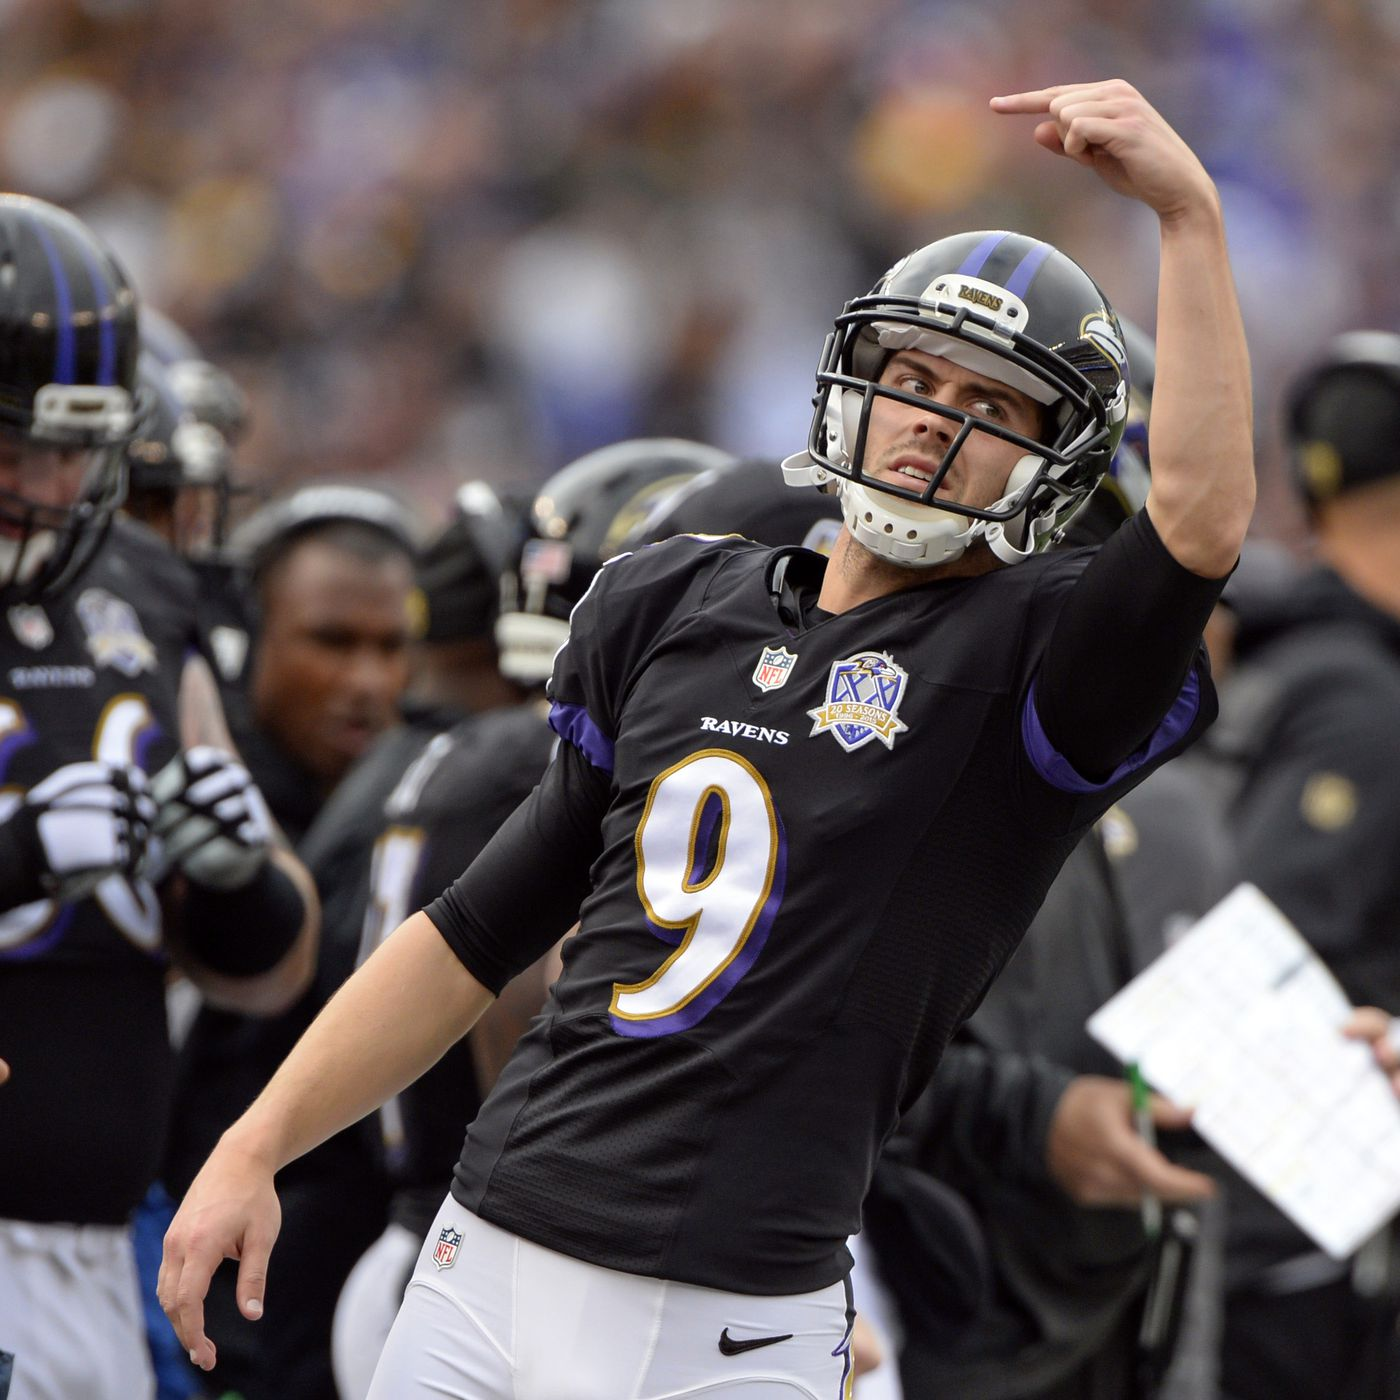 quality design b58a6 6869f Ravens to break out black jerseys against Steelers ...